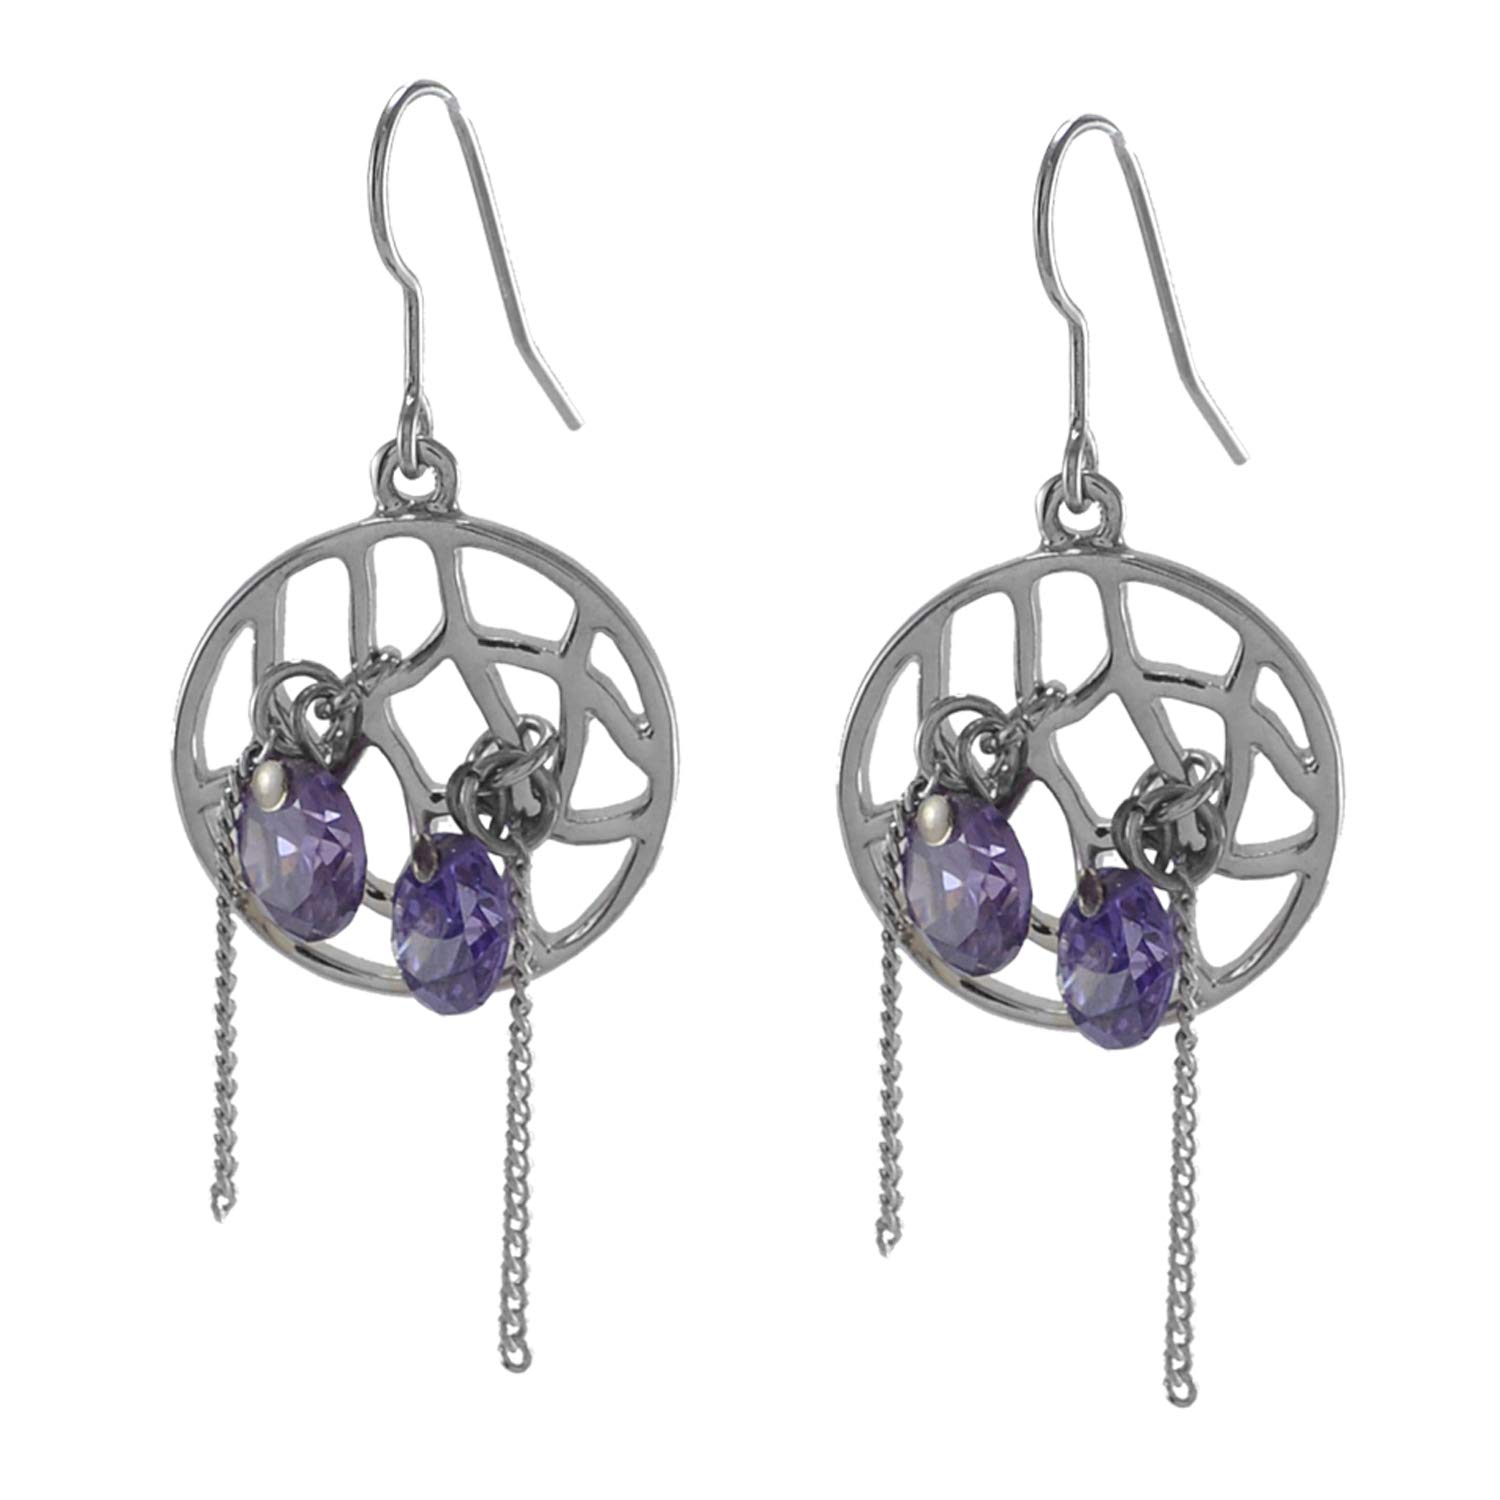 Saamarth Impex Amethyst 925 Silver Plated Dangle Earring For Women /& Girls PG-126179